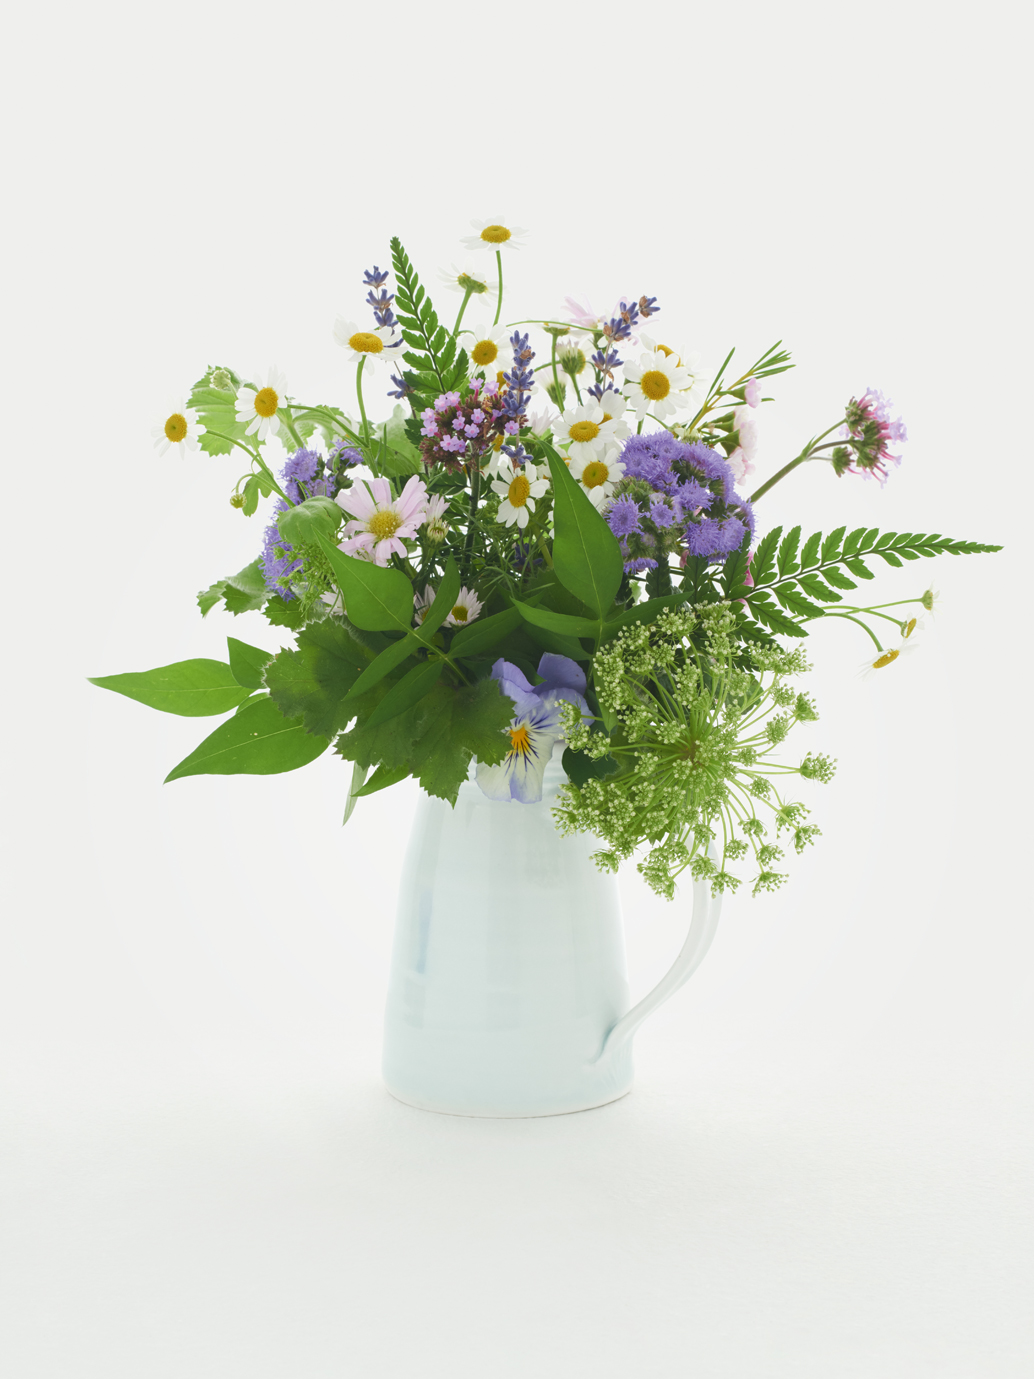 A bunch of blue and white wildflowers and ferns, artfully arranged in a white jug .